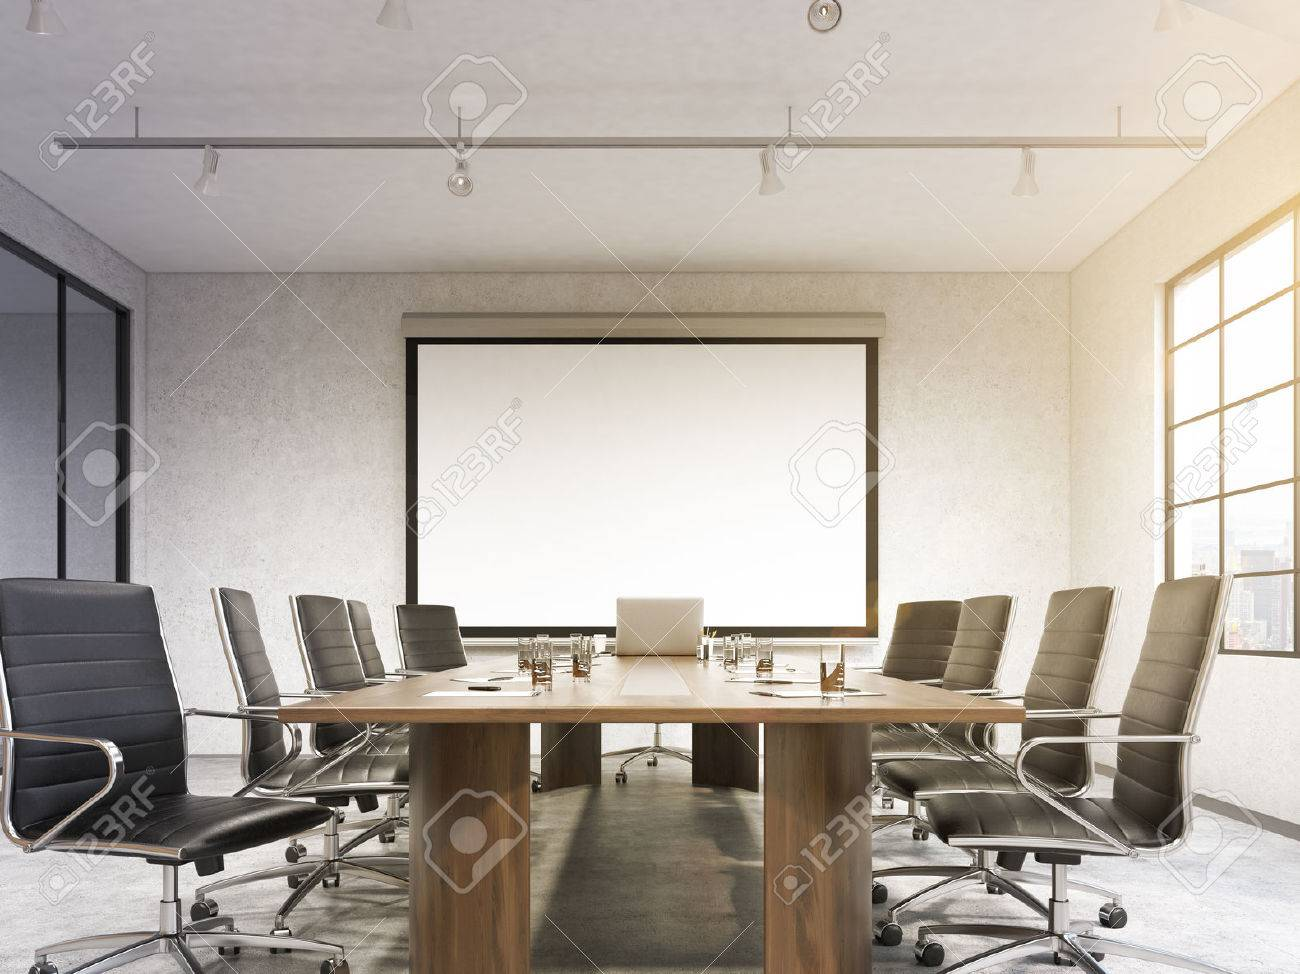 Big Meeting Room Blank Poster On White Wall Behind Table Concept Of Negotiations